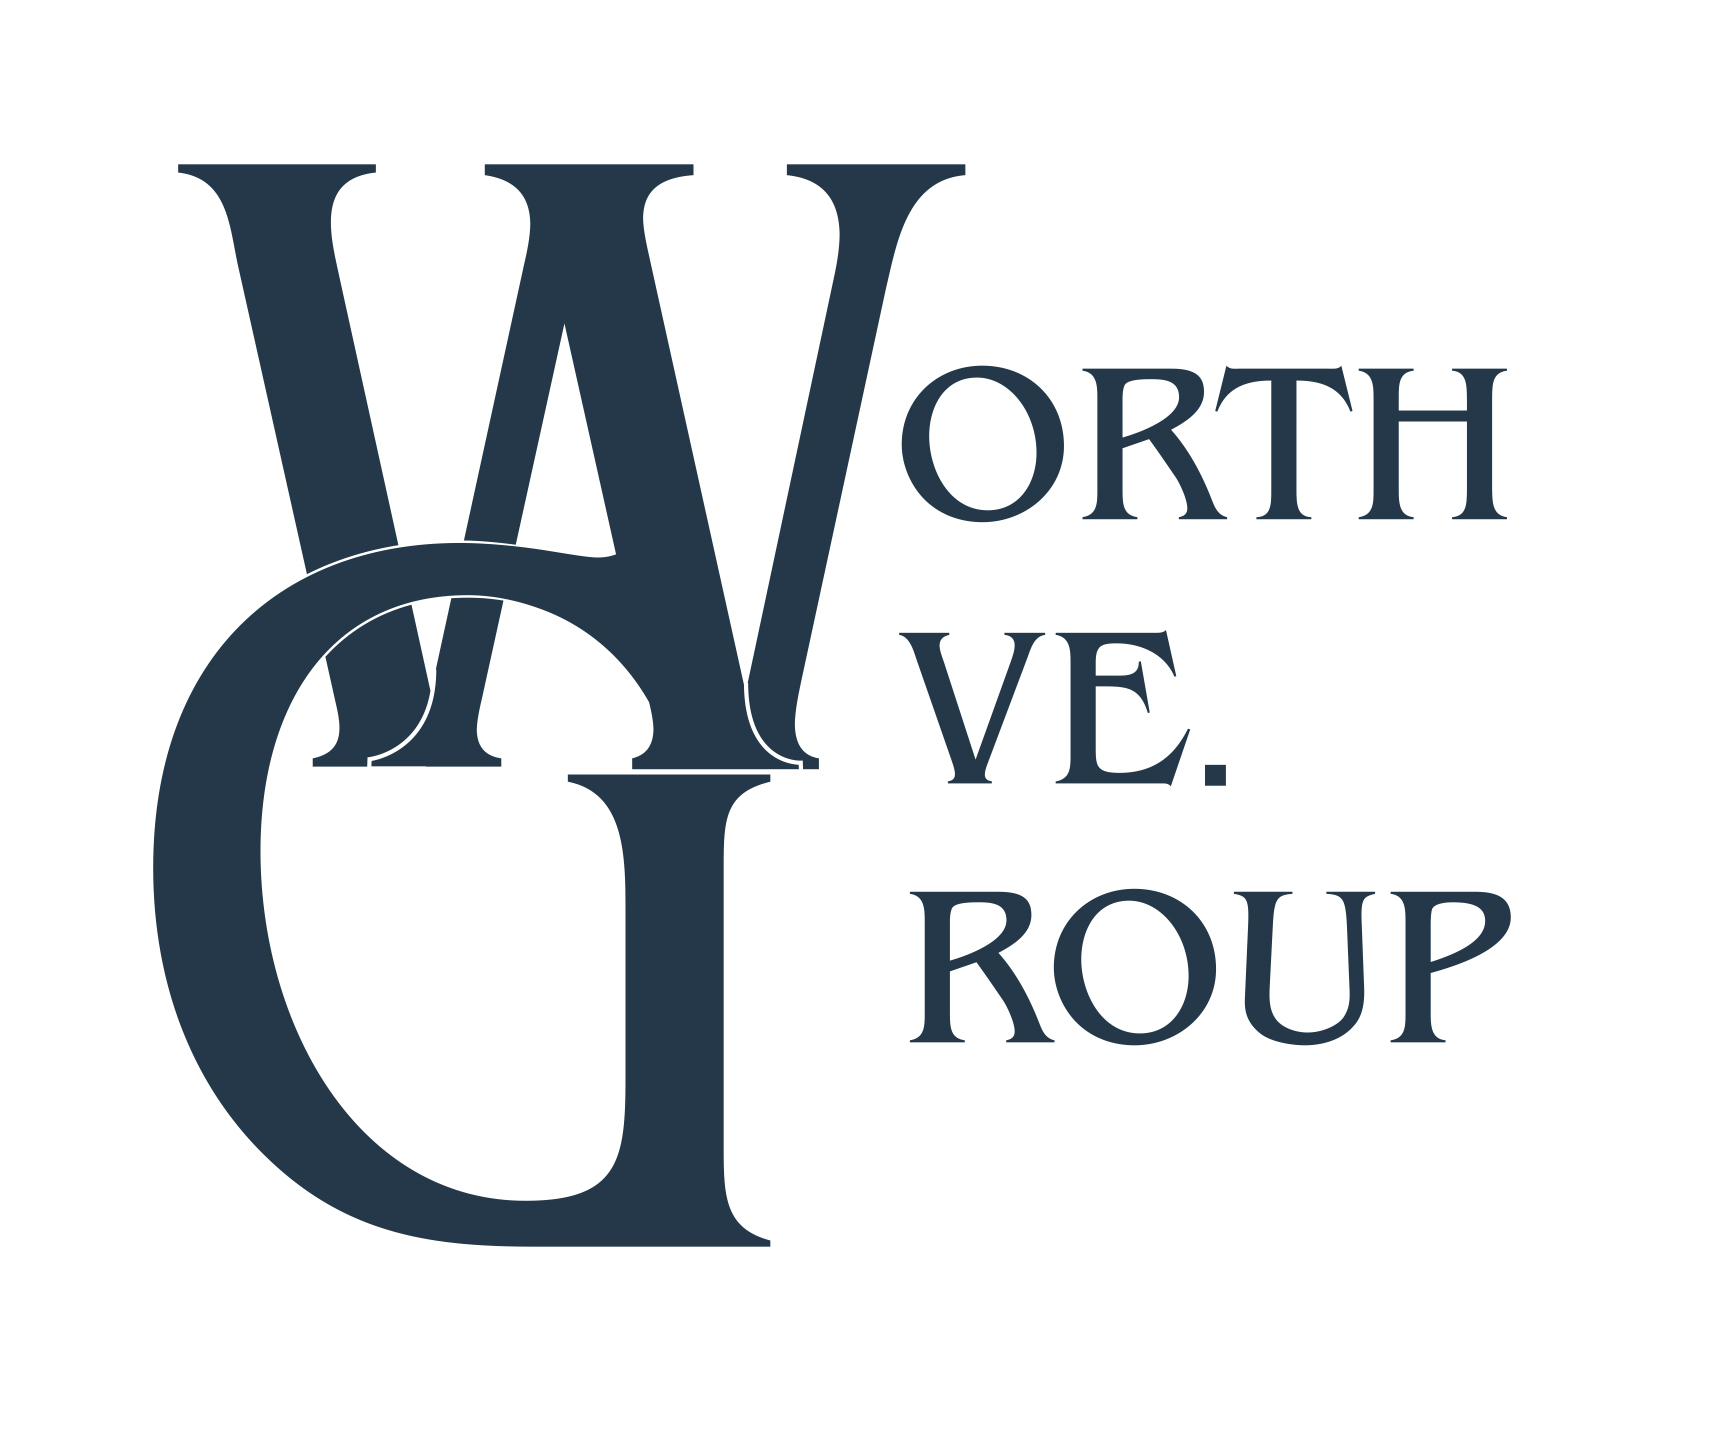 Worth Ave. Group author image